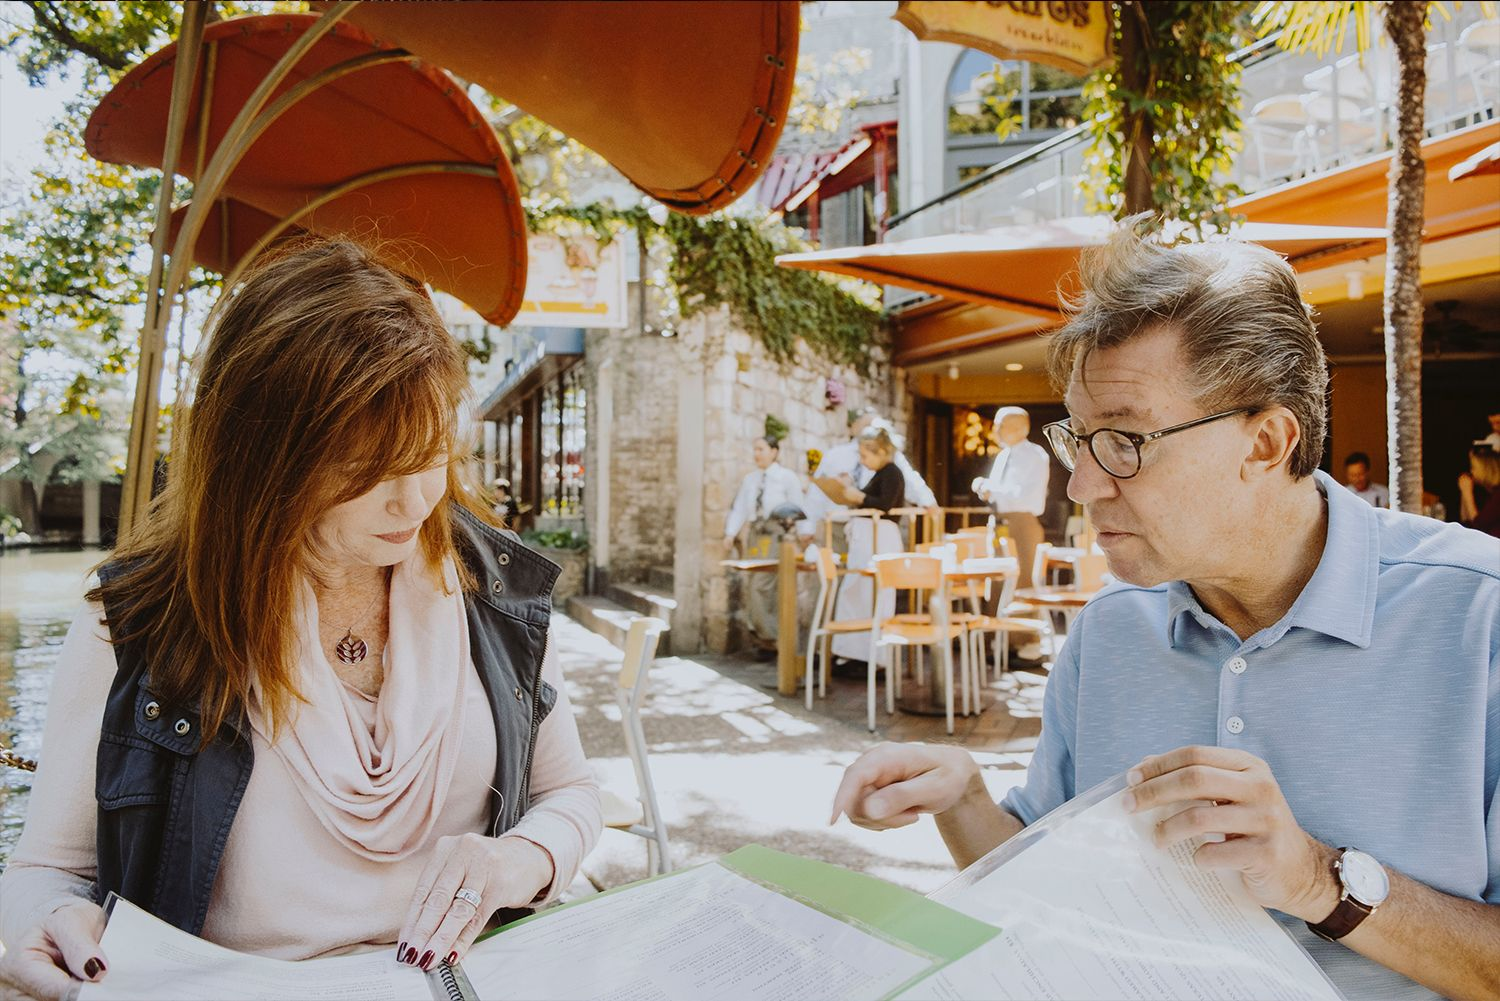 How to Conduct a Restaurant Feasibility Study [Outline + 5 Tips]